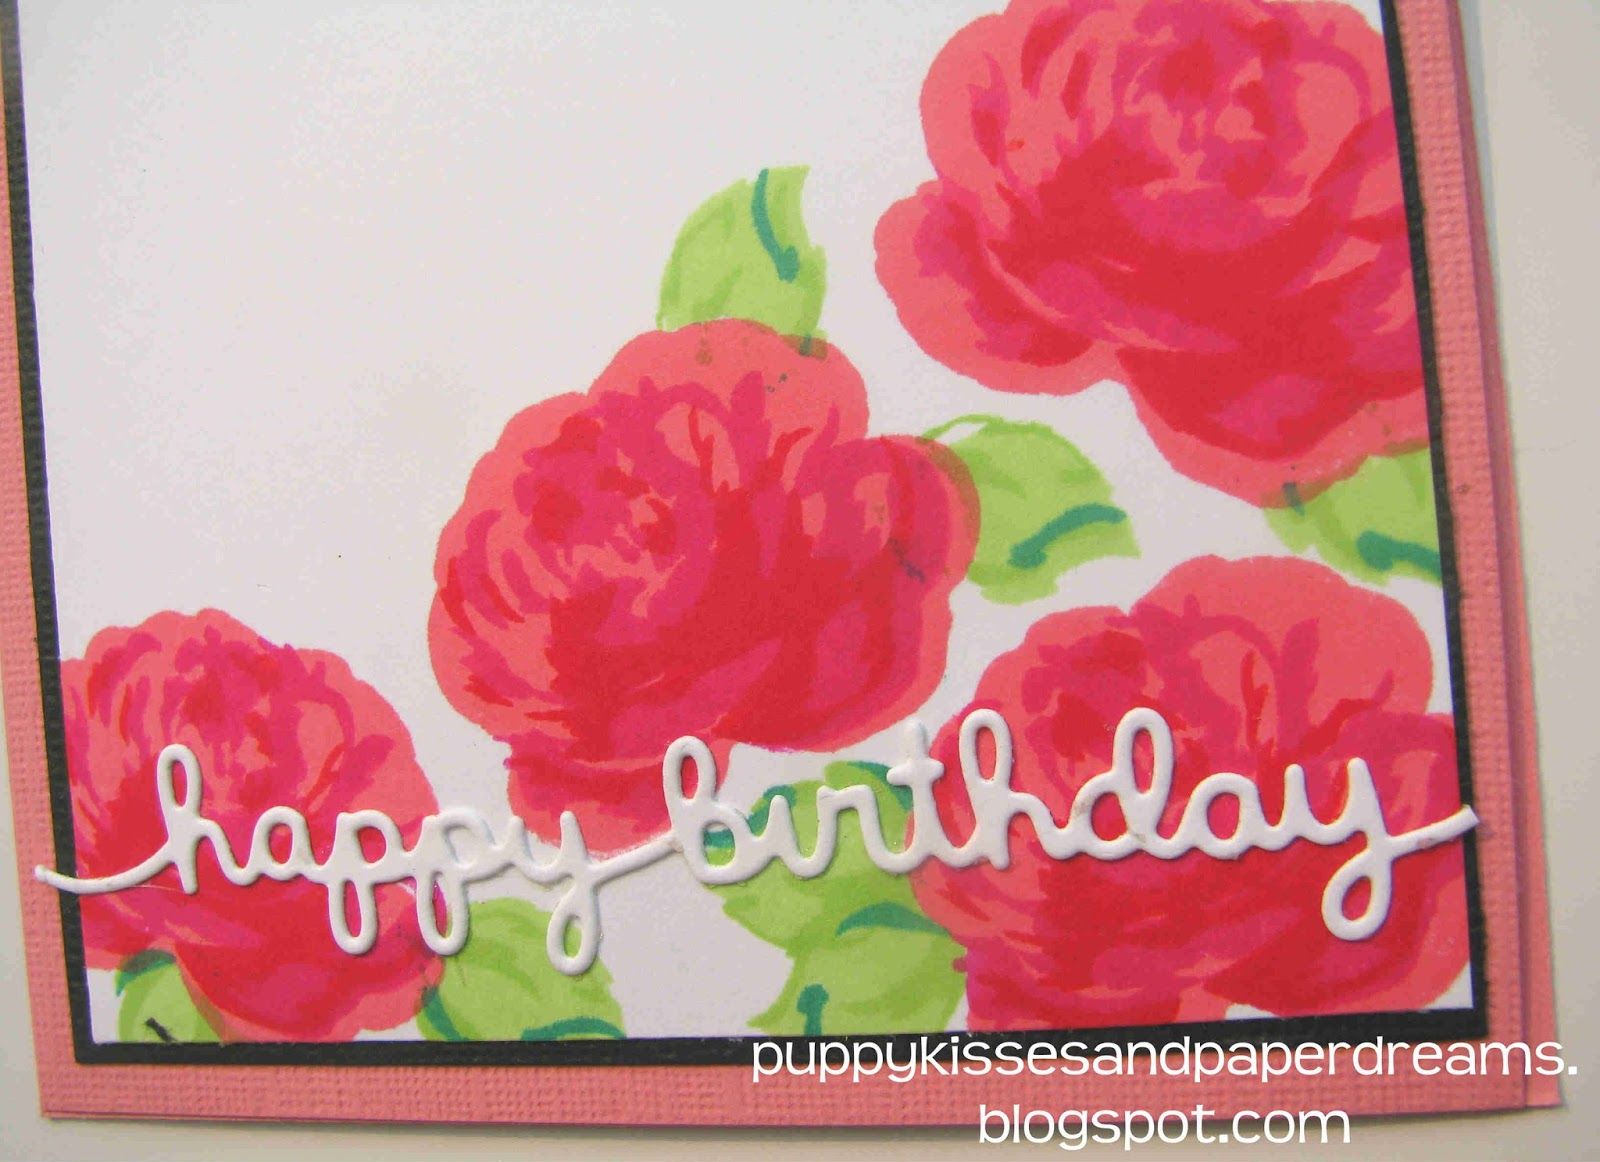 Puppy kisses and paper dreams birthday flower cards 08292015 the happy birthday sentiment was a die cut from lawn fawn called happy birthday border i cut it out from white cardstock and adhered it to the front of izmirmasajfo